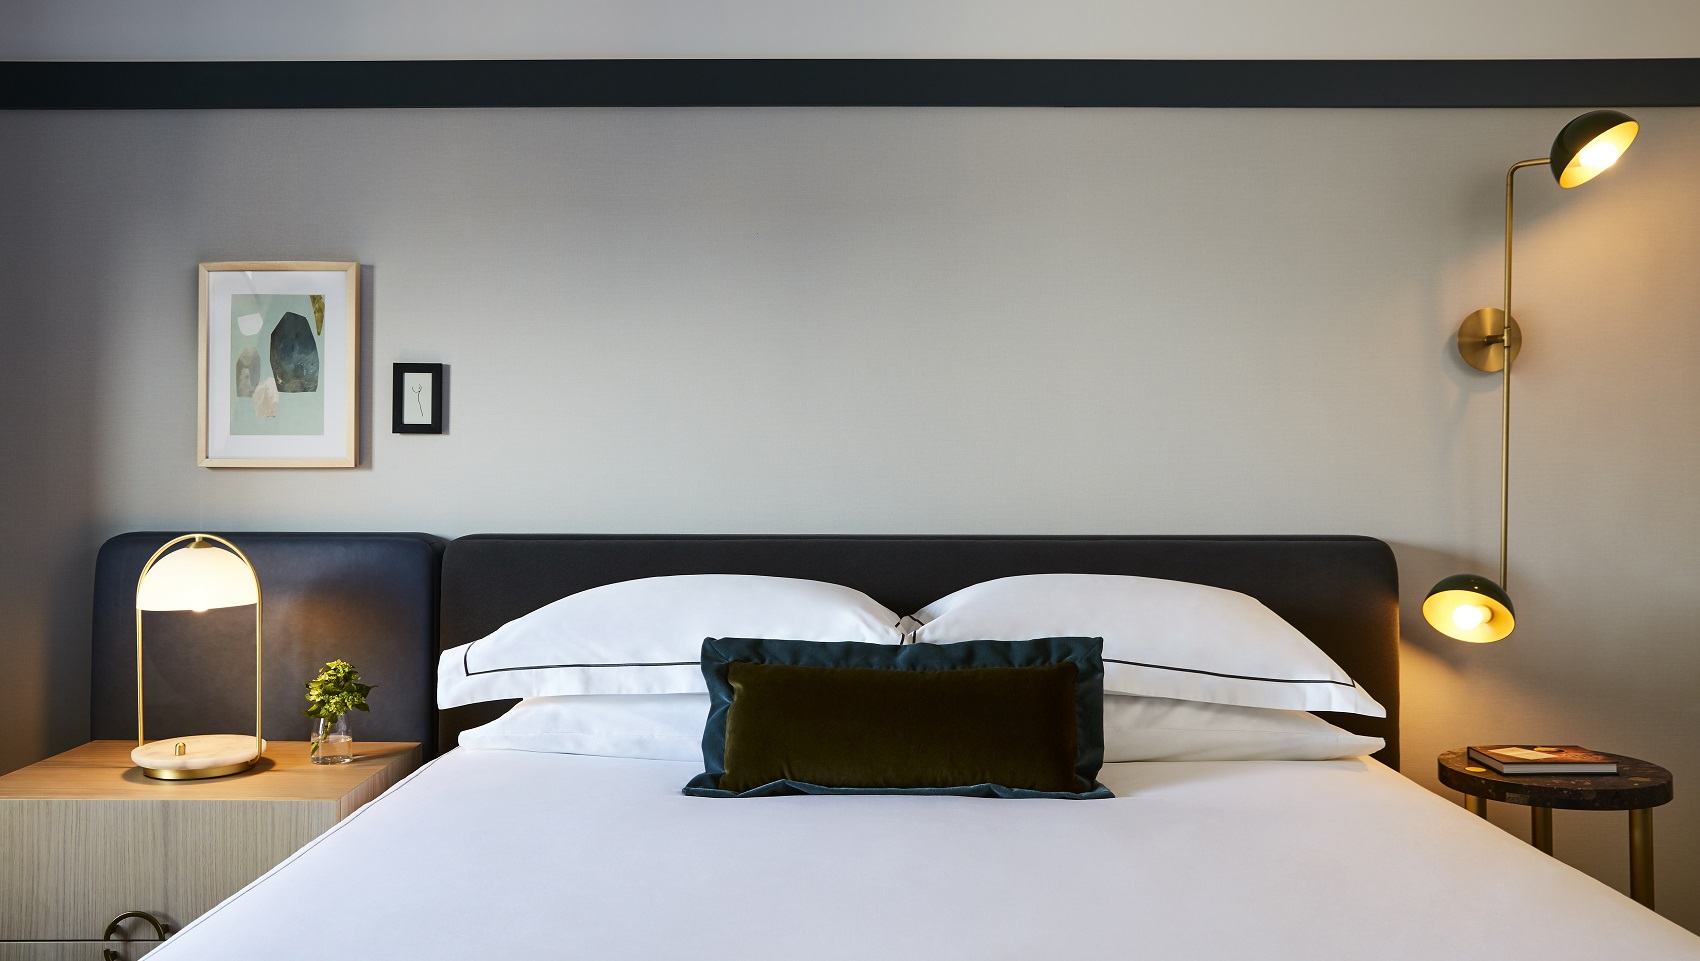 Bedroom, Art, green velvet pillow, black headboard, White Frette Sheets